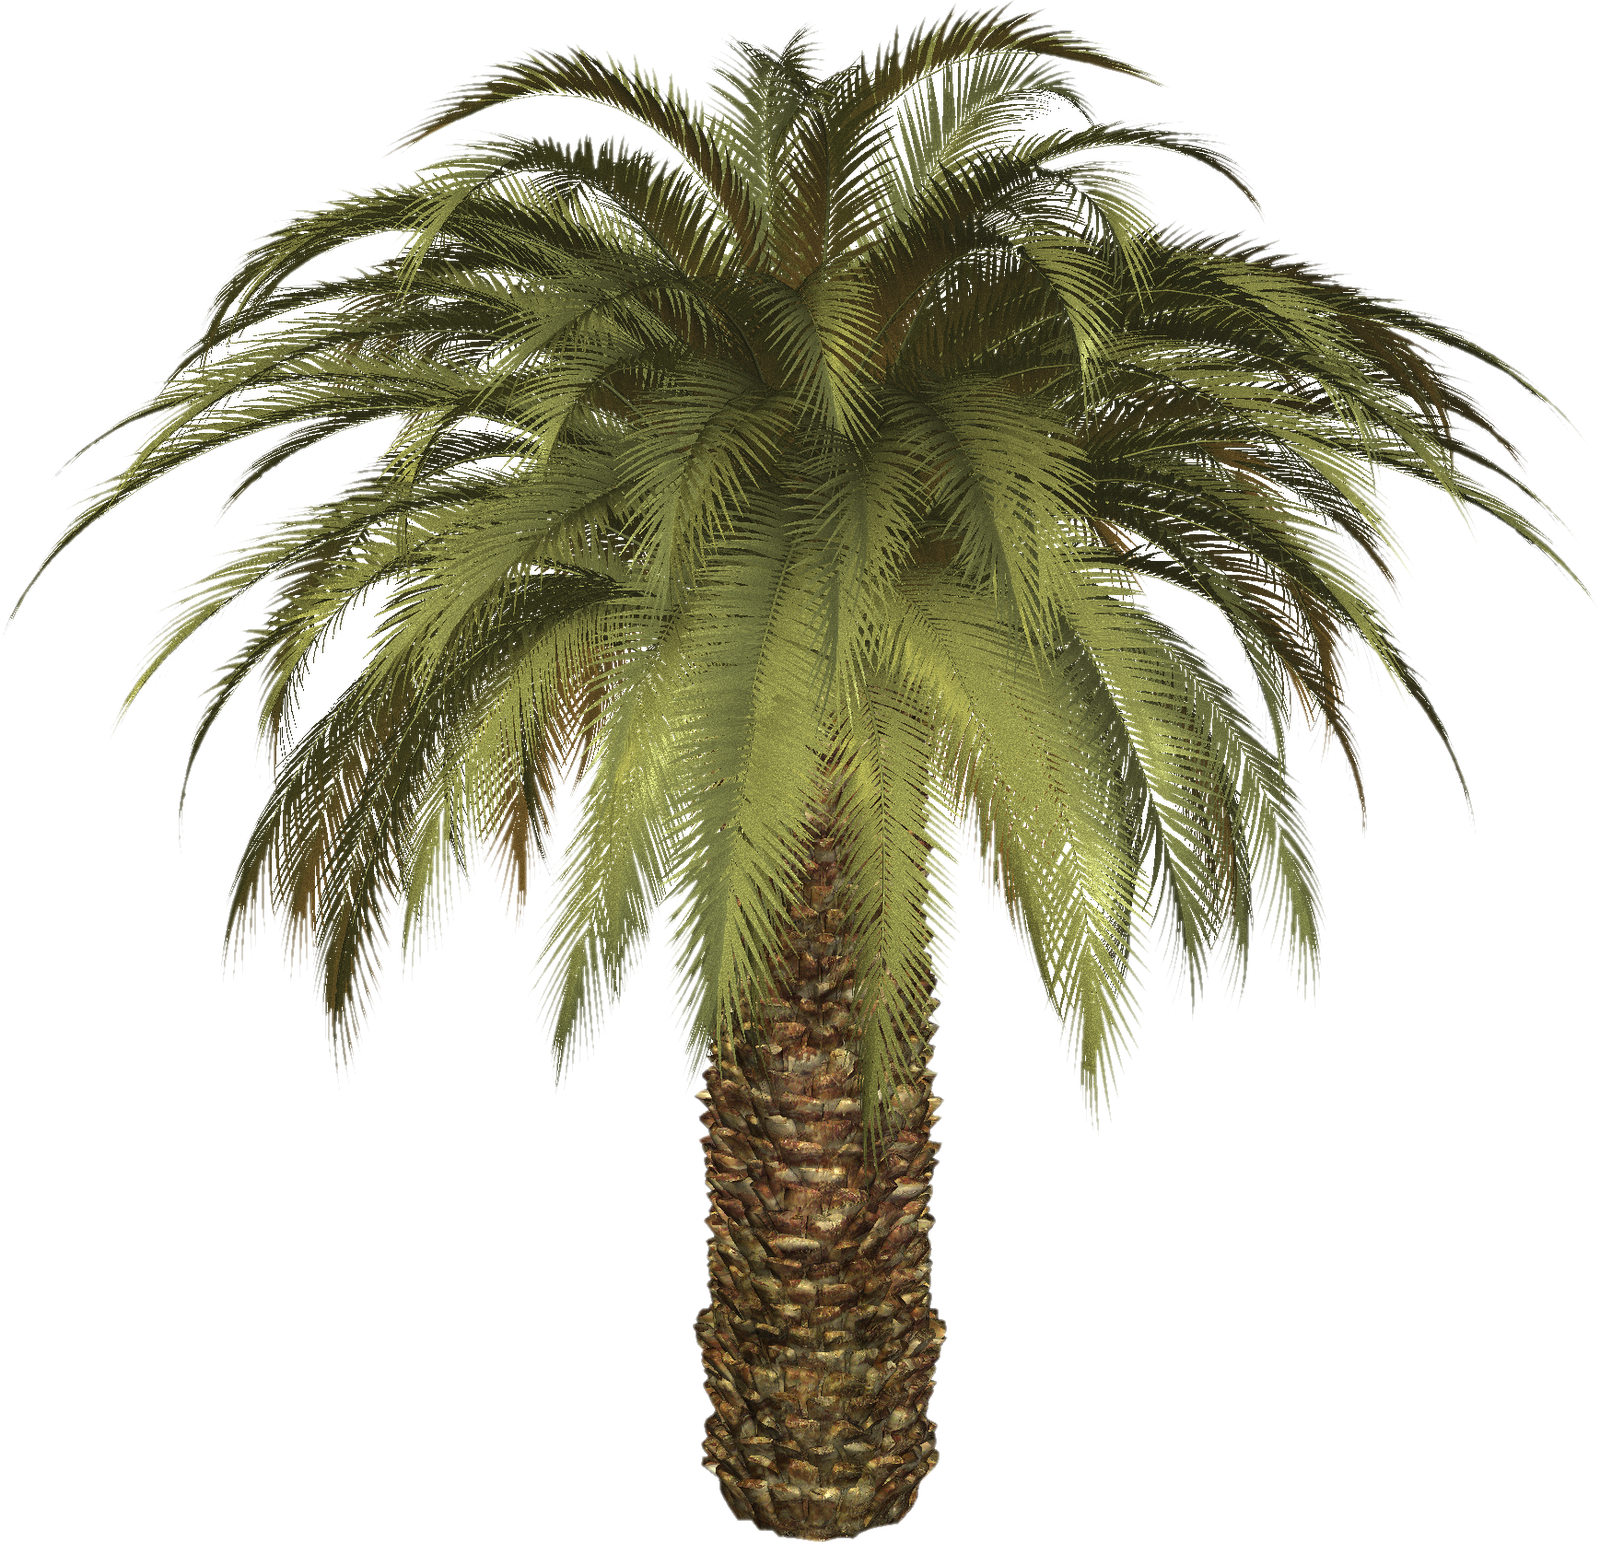 Palm tree PNG images, download free pictures.